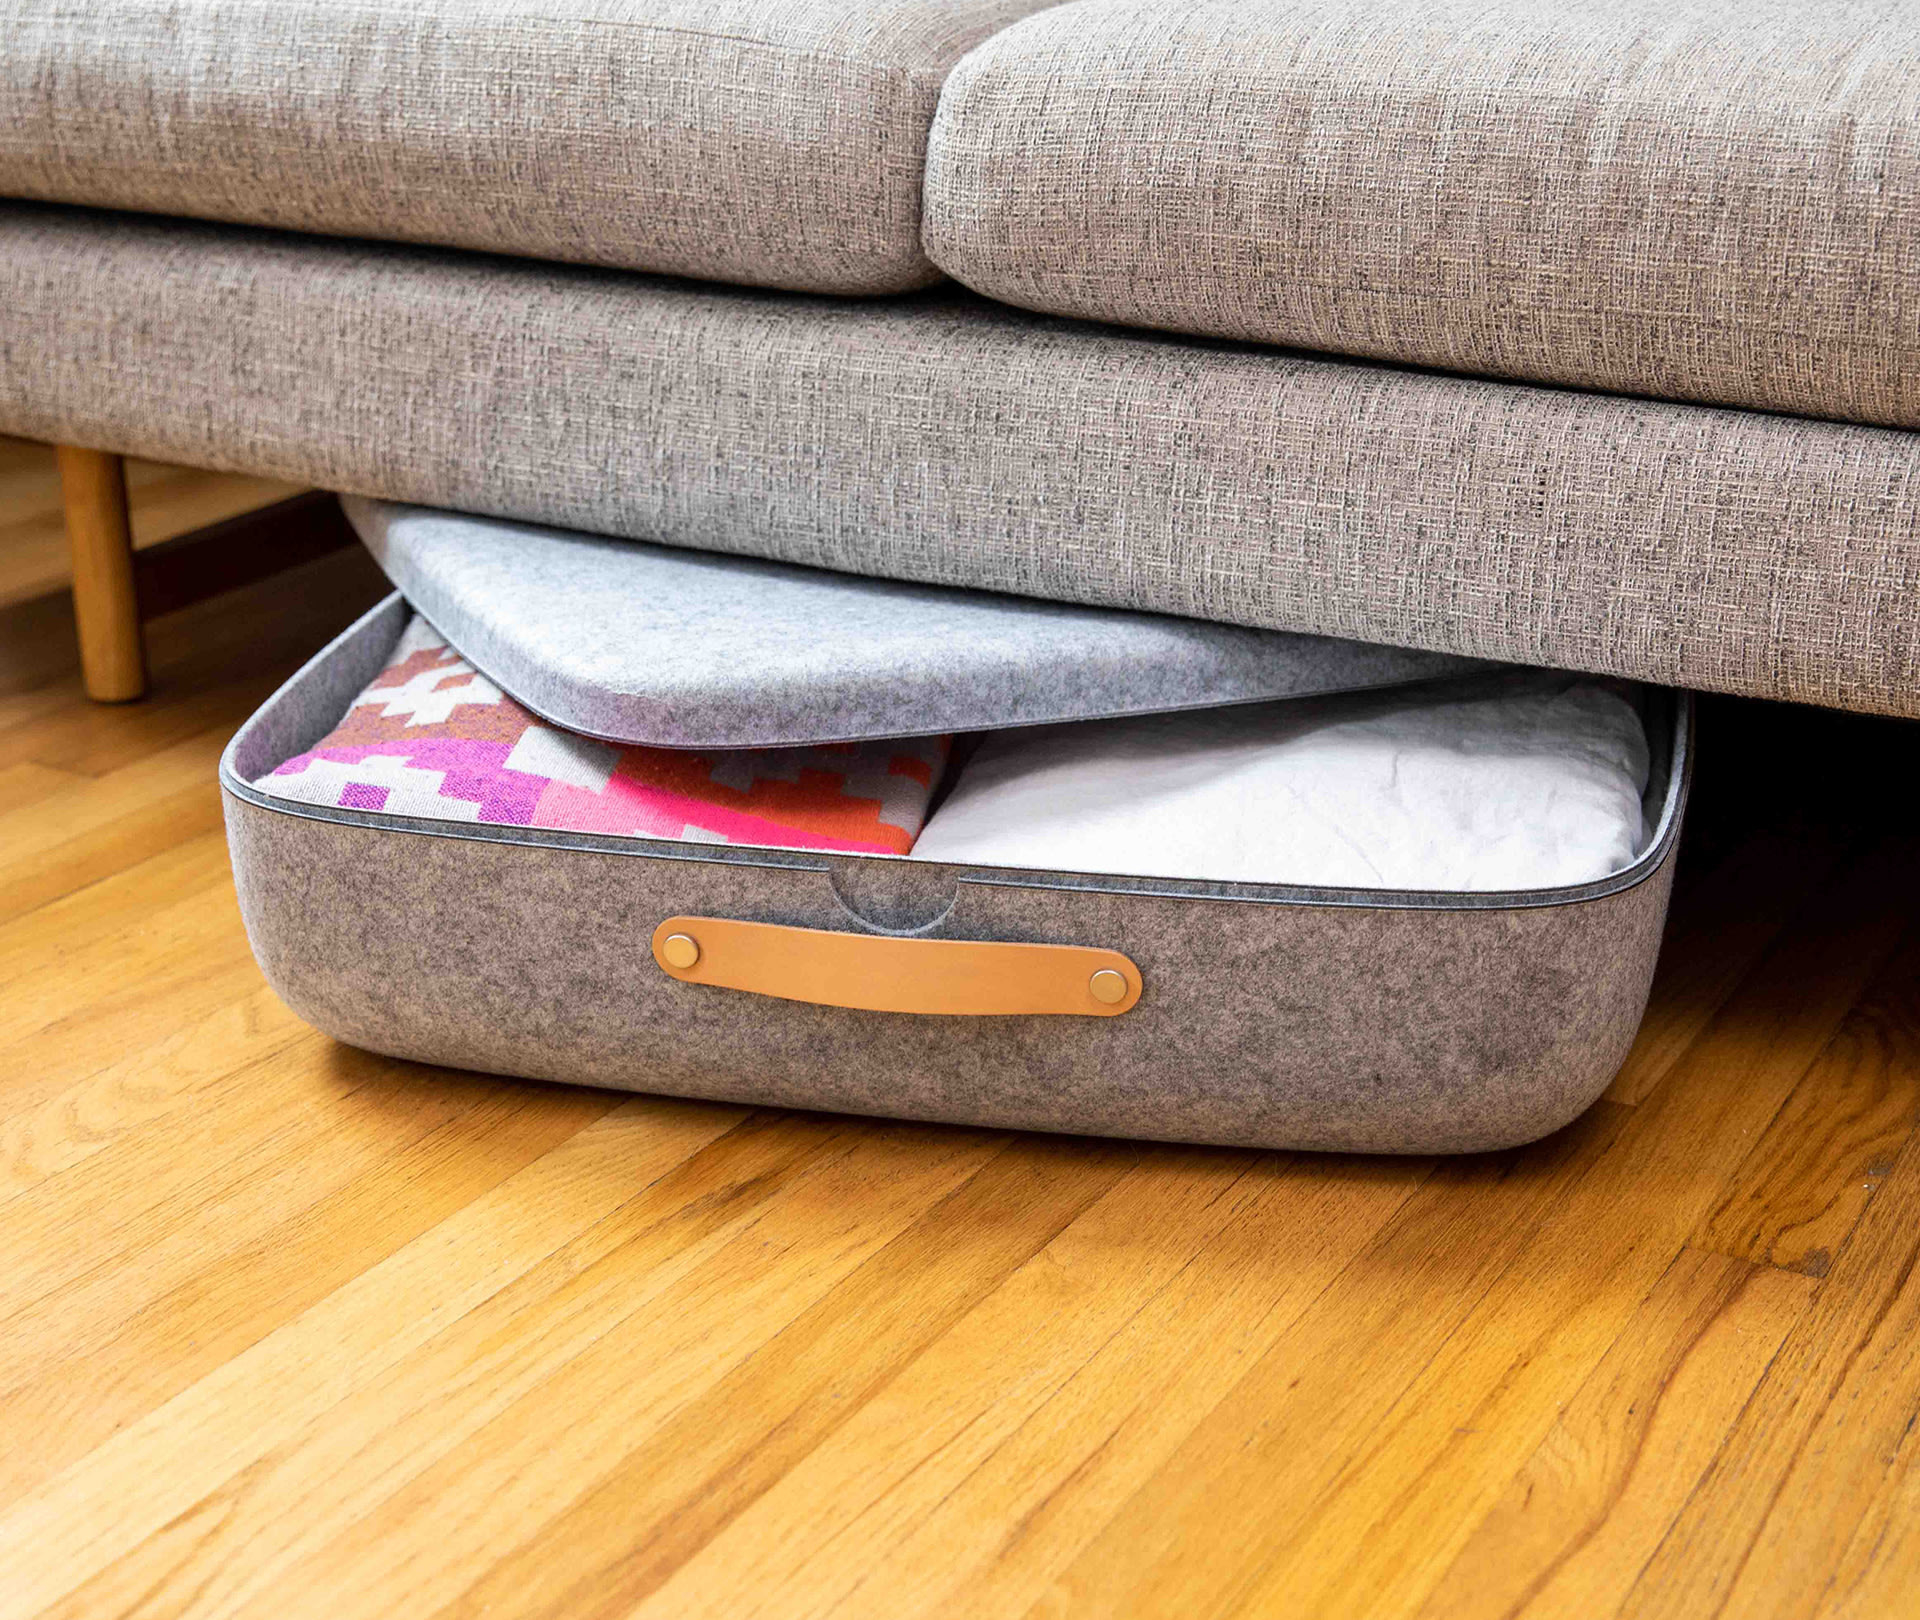 the square-shaped storage bin under a couch, with the lid off, showing how much can fit inside